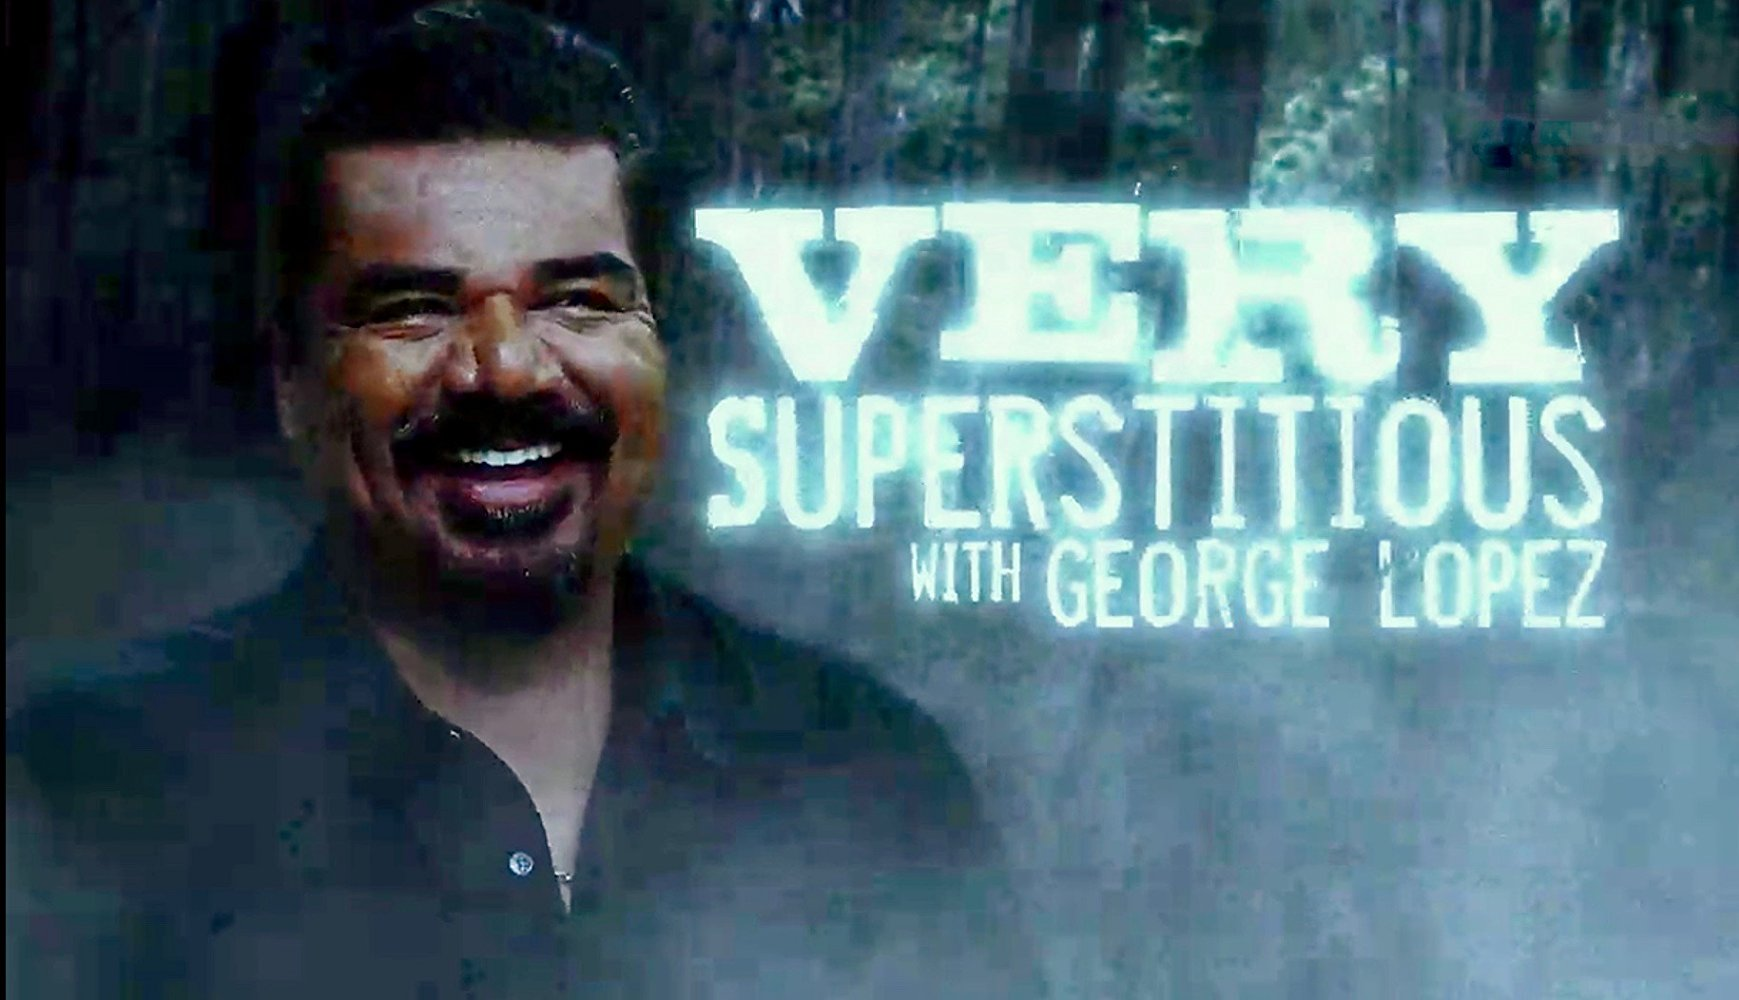 Very Superstitious with George Lopez S01E07 WEB h264-TBS